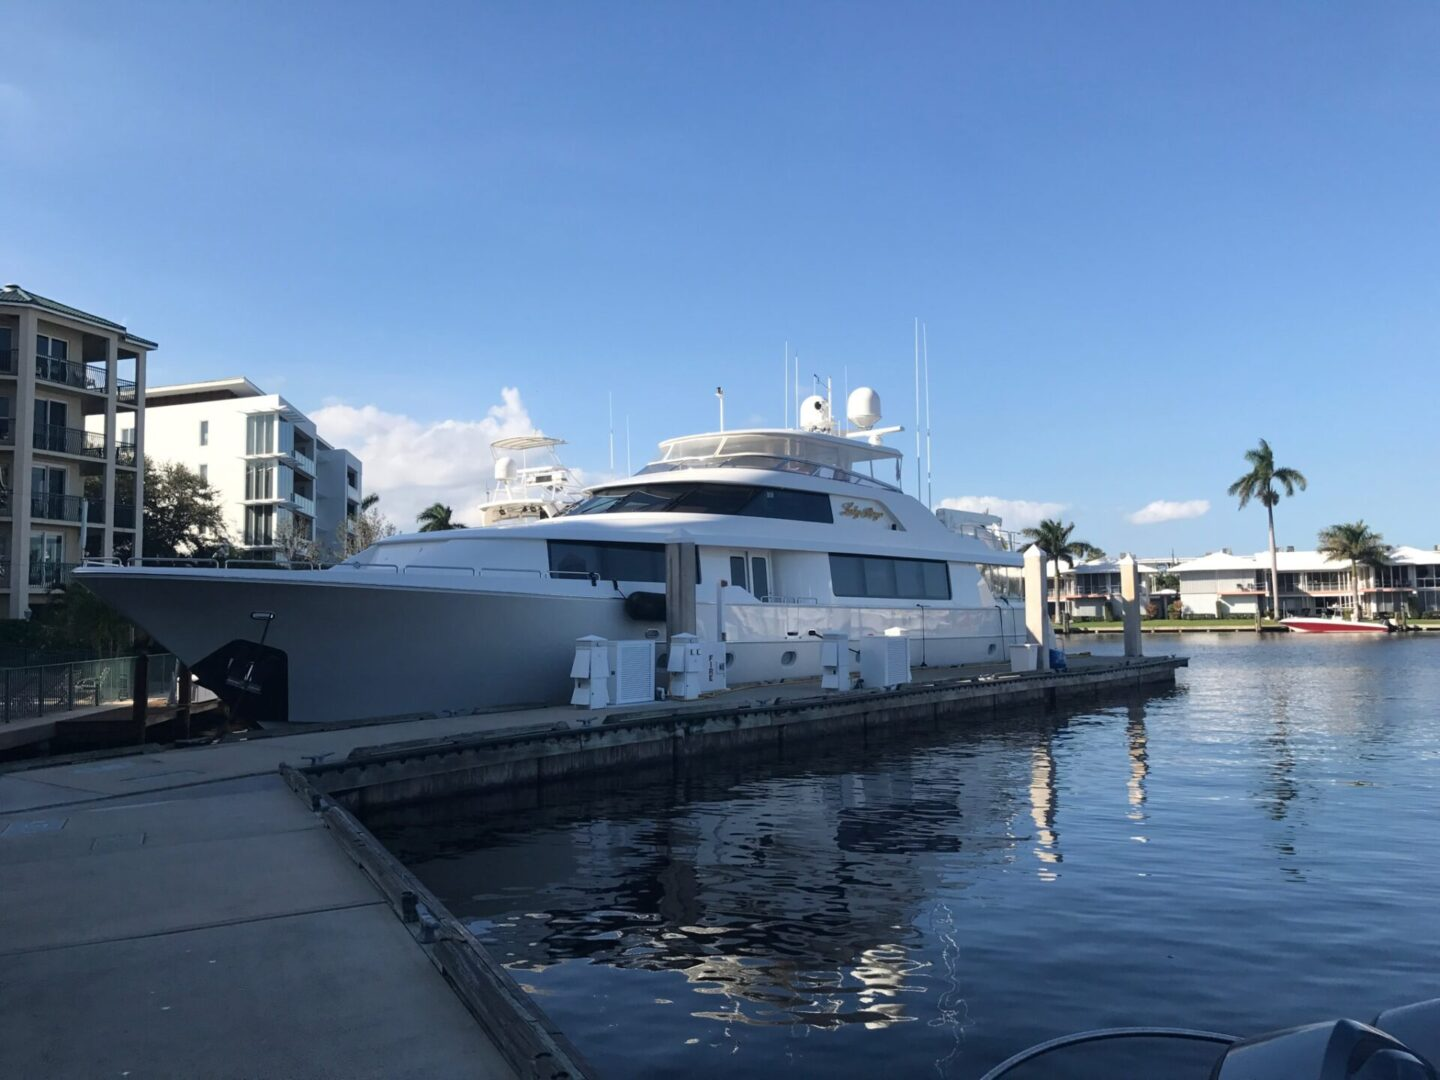 A Lady Raye docked at the pier